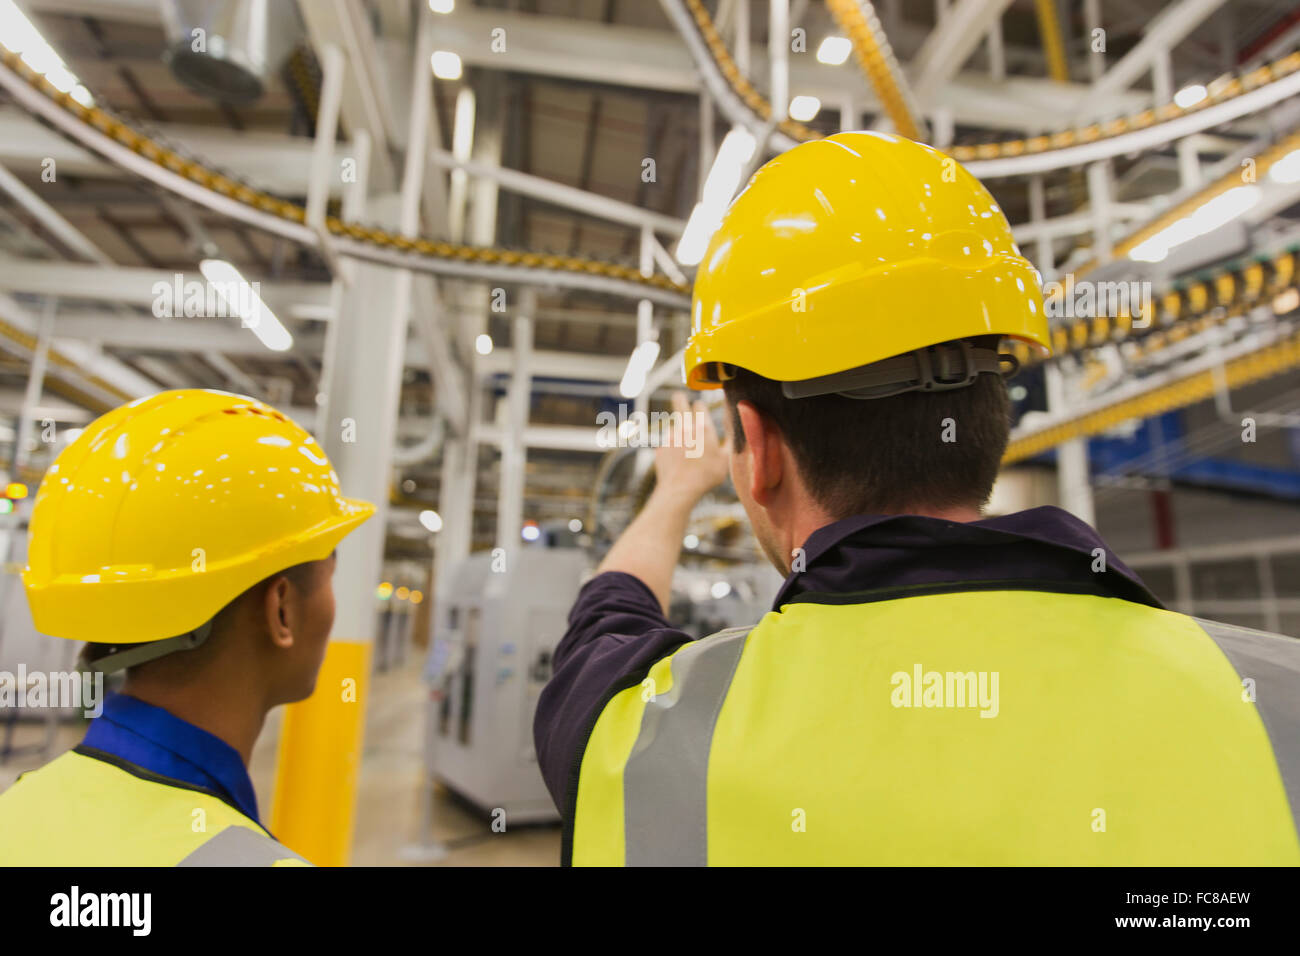 Workers discussing printing press conveyor belts overhead - Stock Image